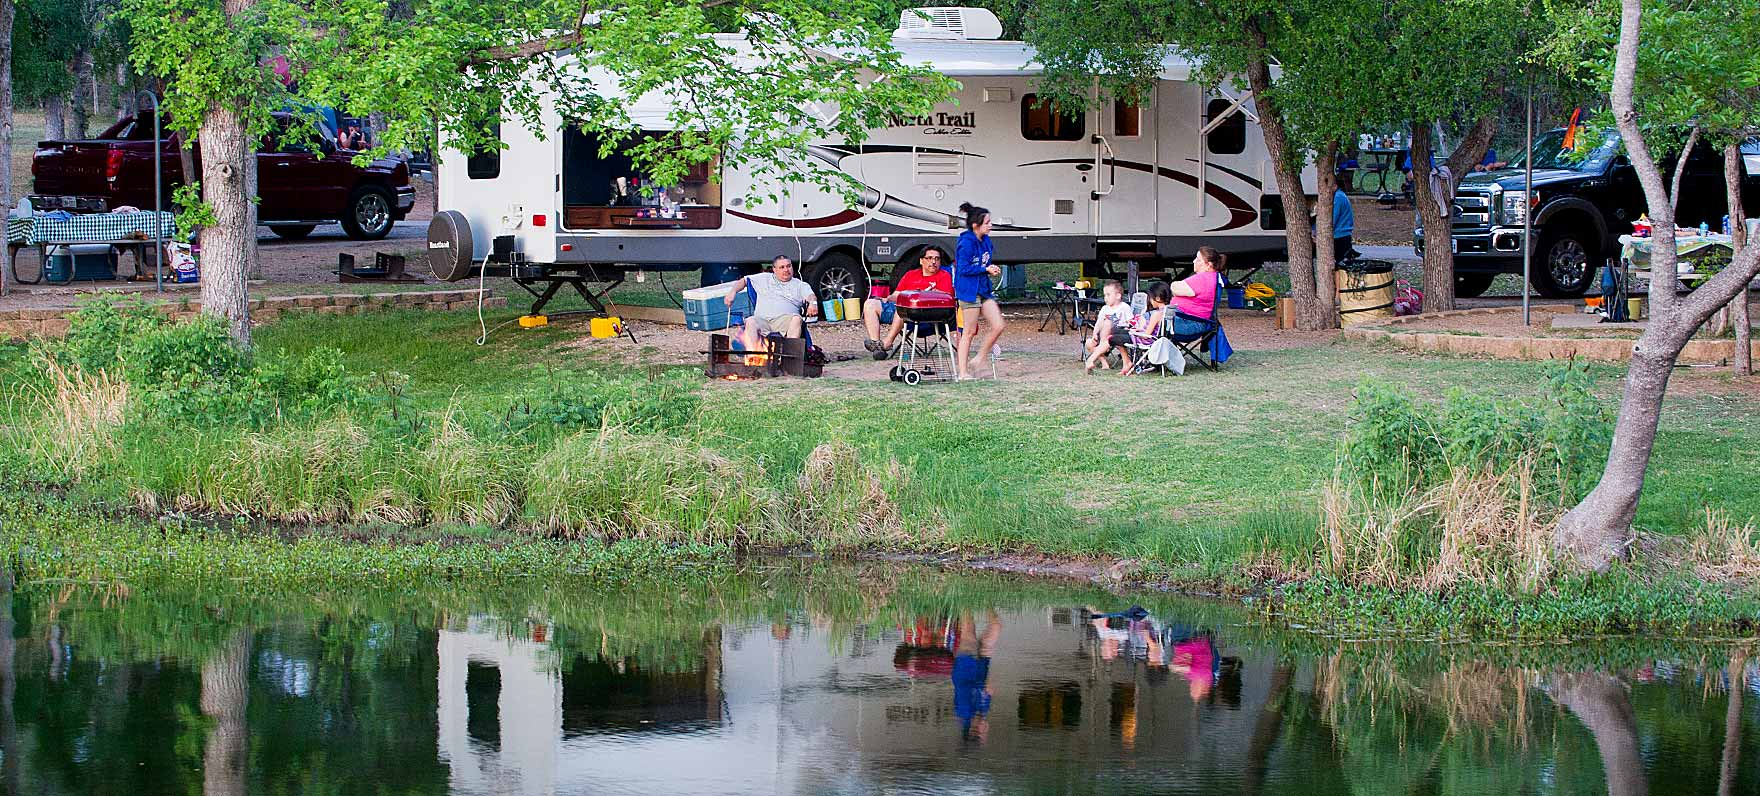 RV Camping on Texas Lakes and Rivers – LakeHouseLifer